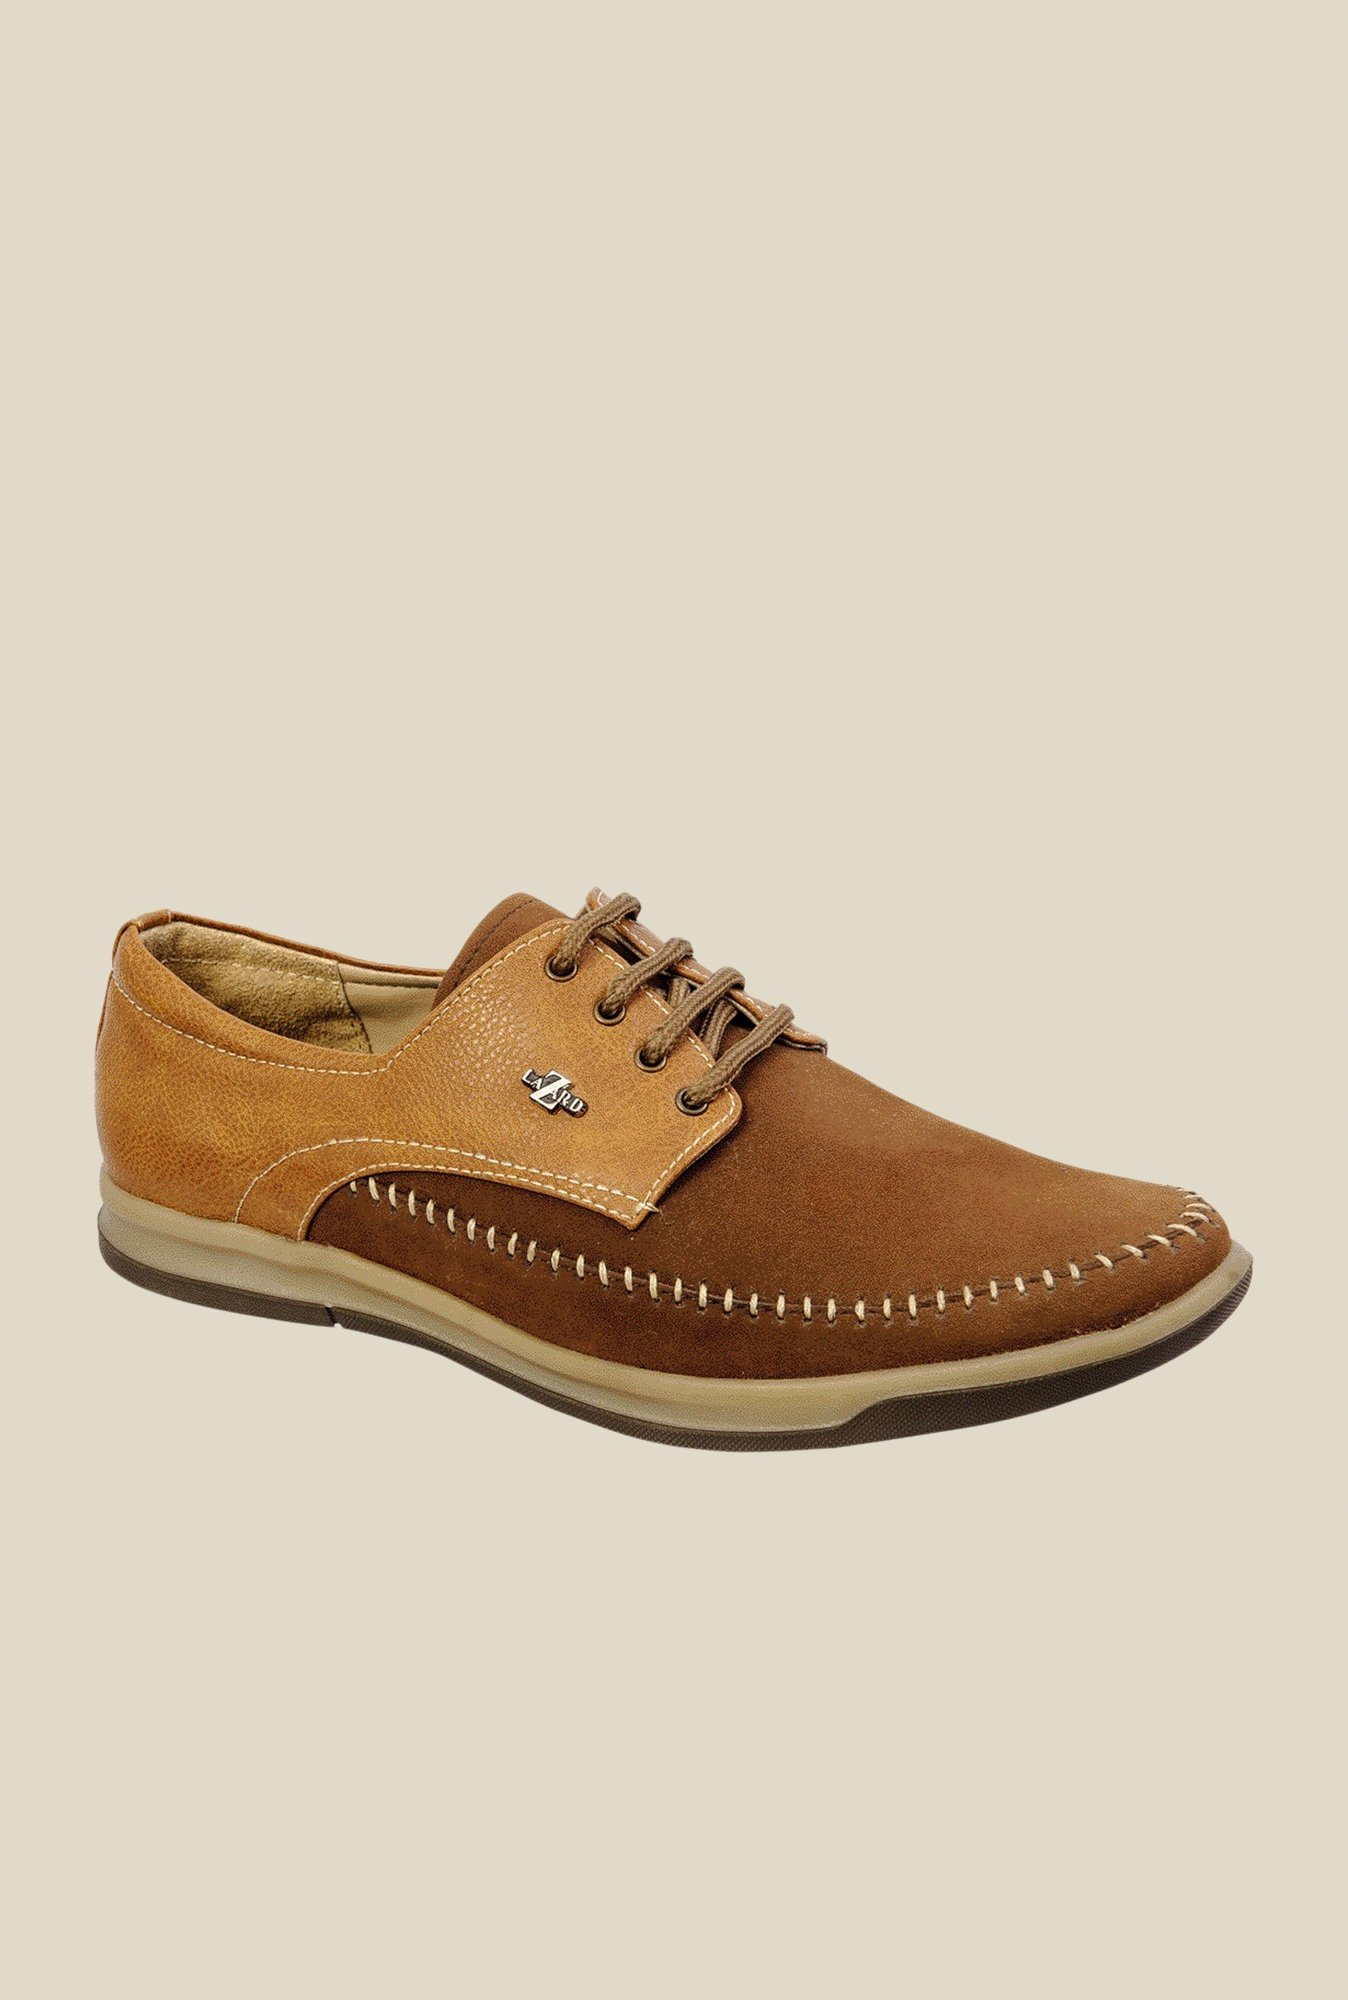 Khadim's Brown Derby Shoes